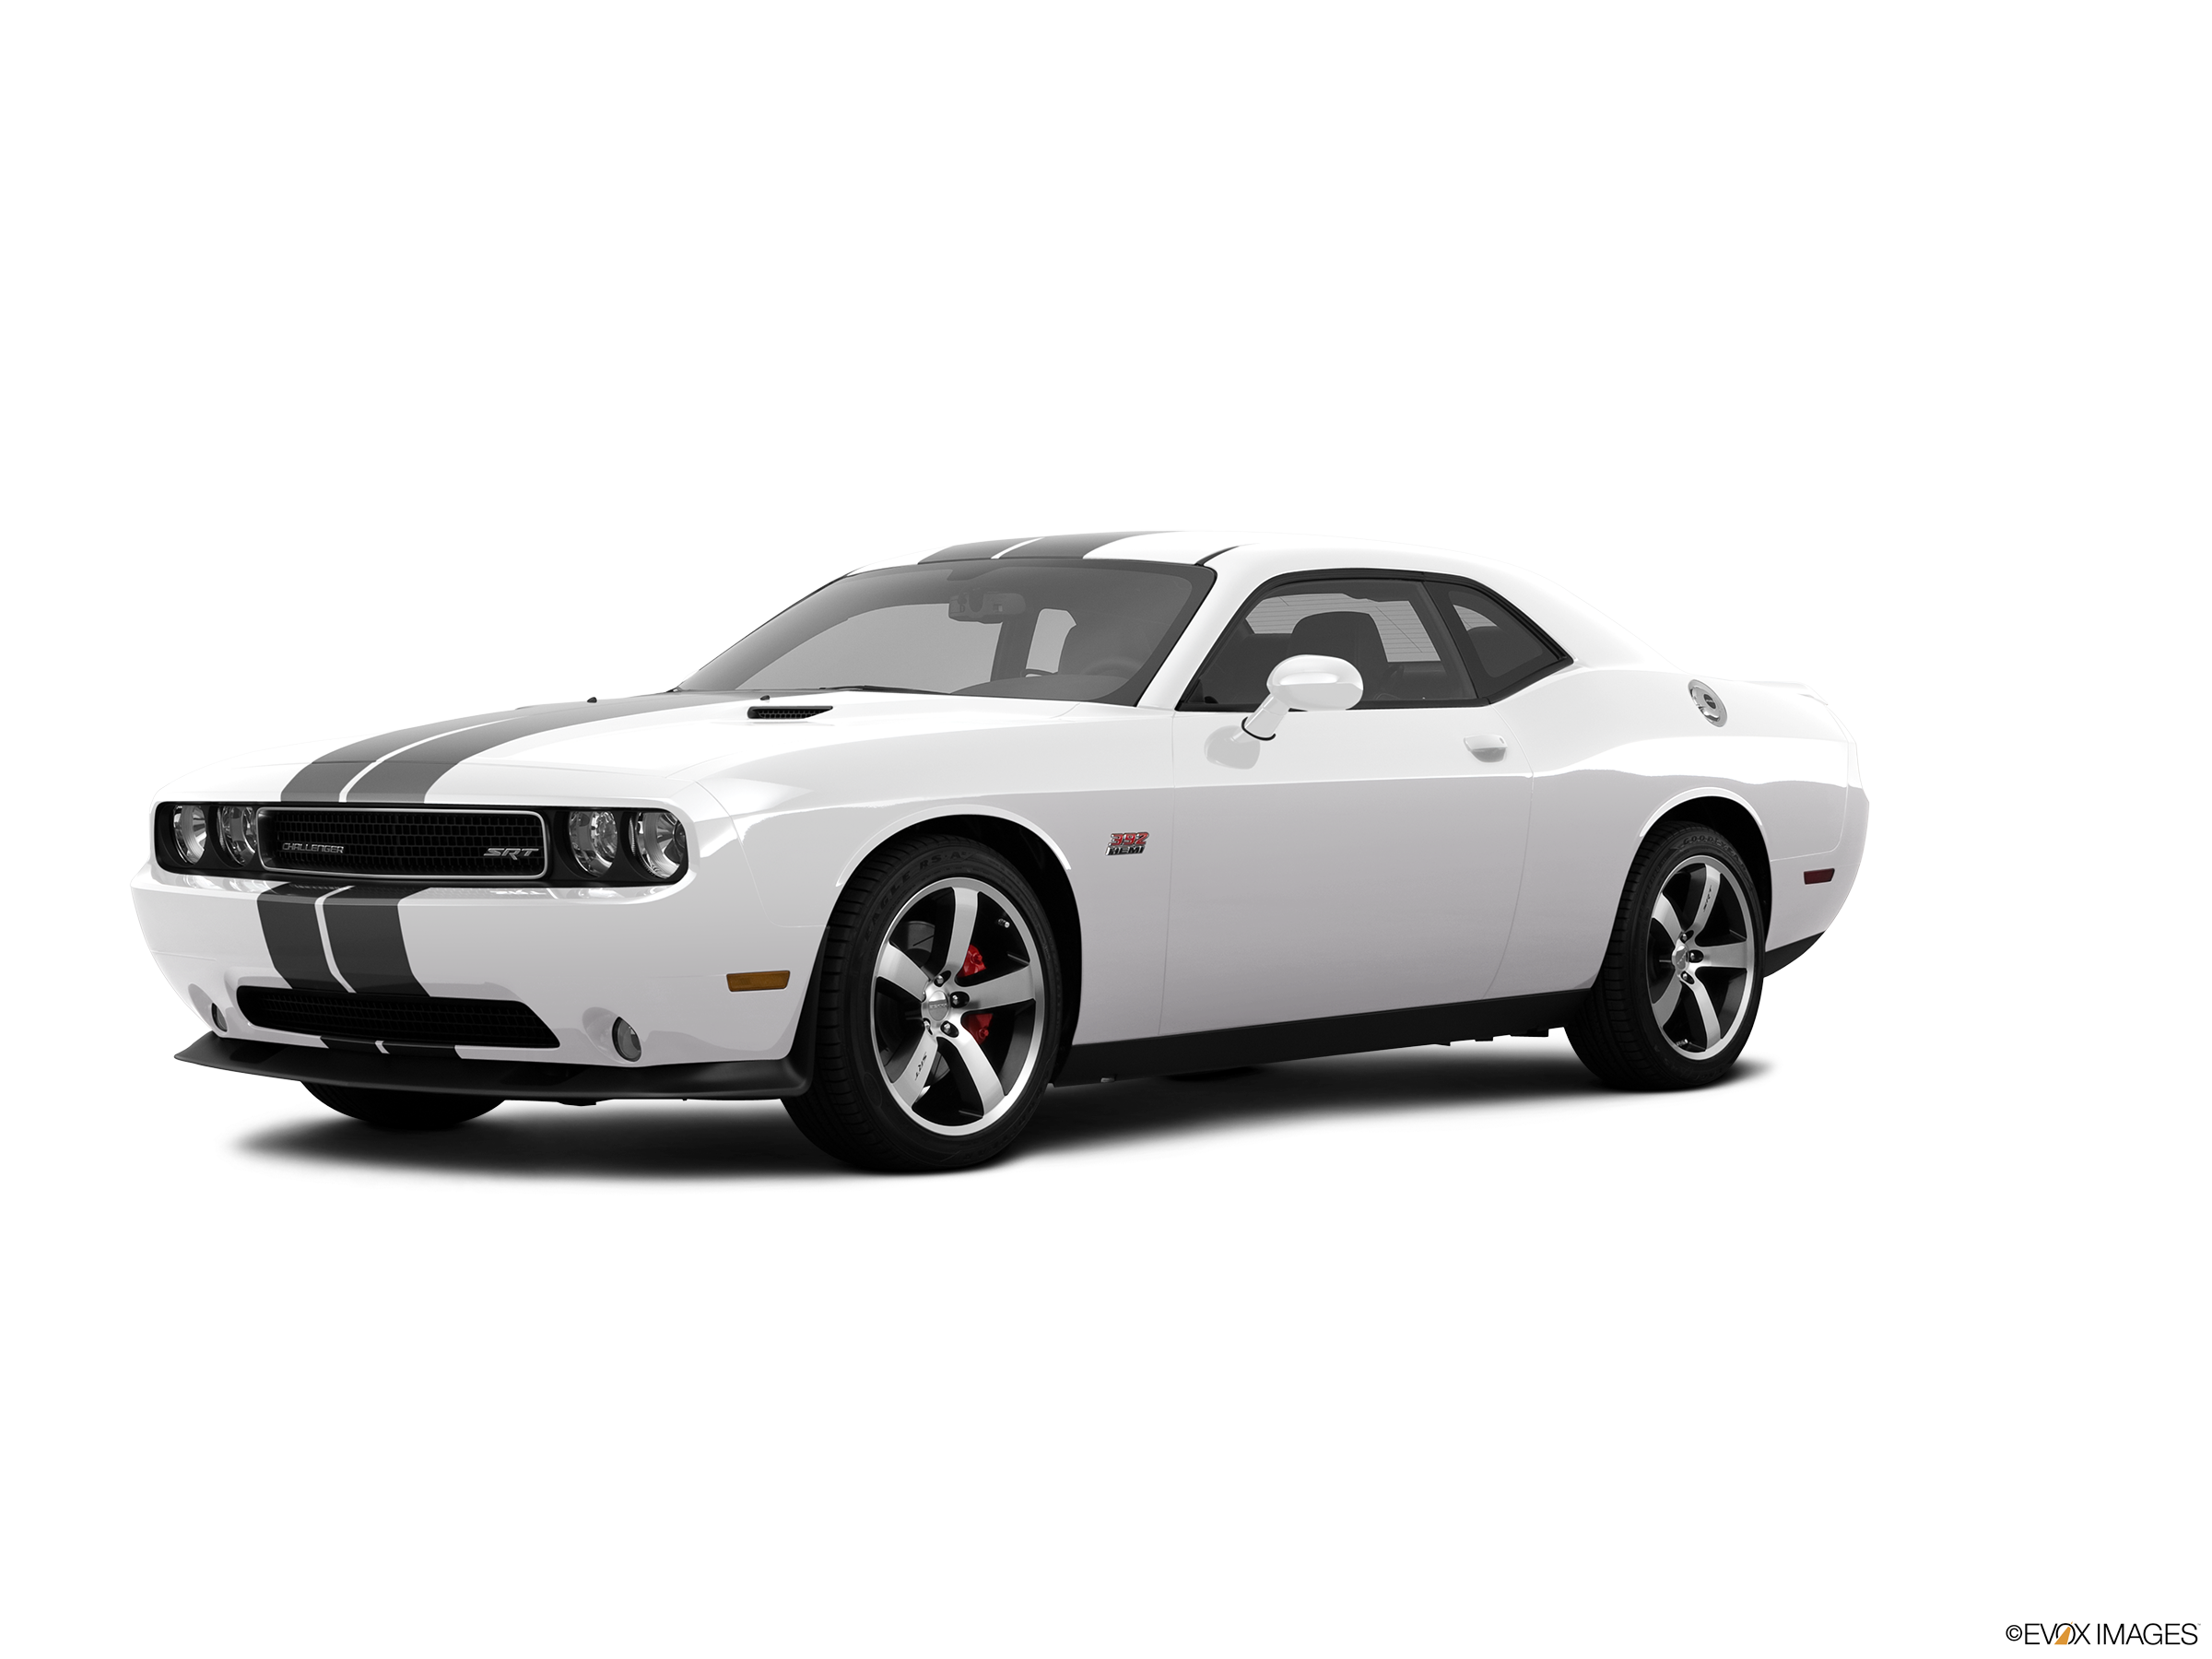 Used 2014 Dodge Challenger Srt8 Core Coupe 2d Prices Kelley Blue Book